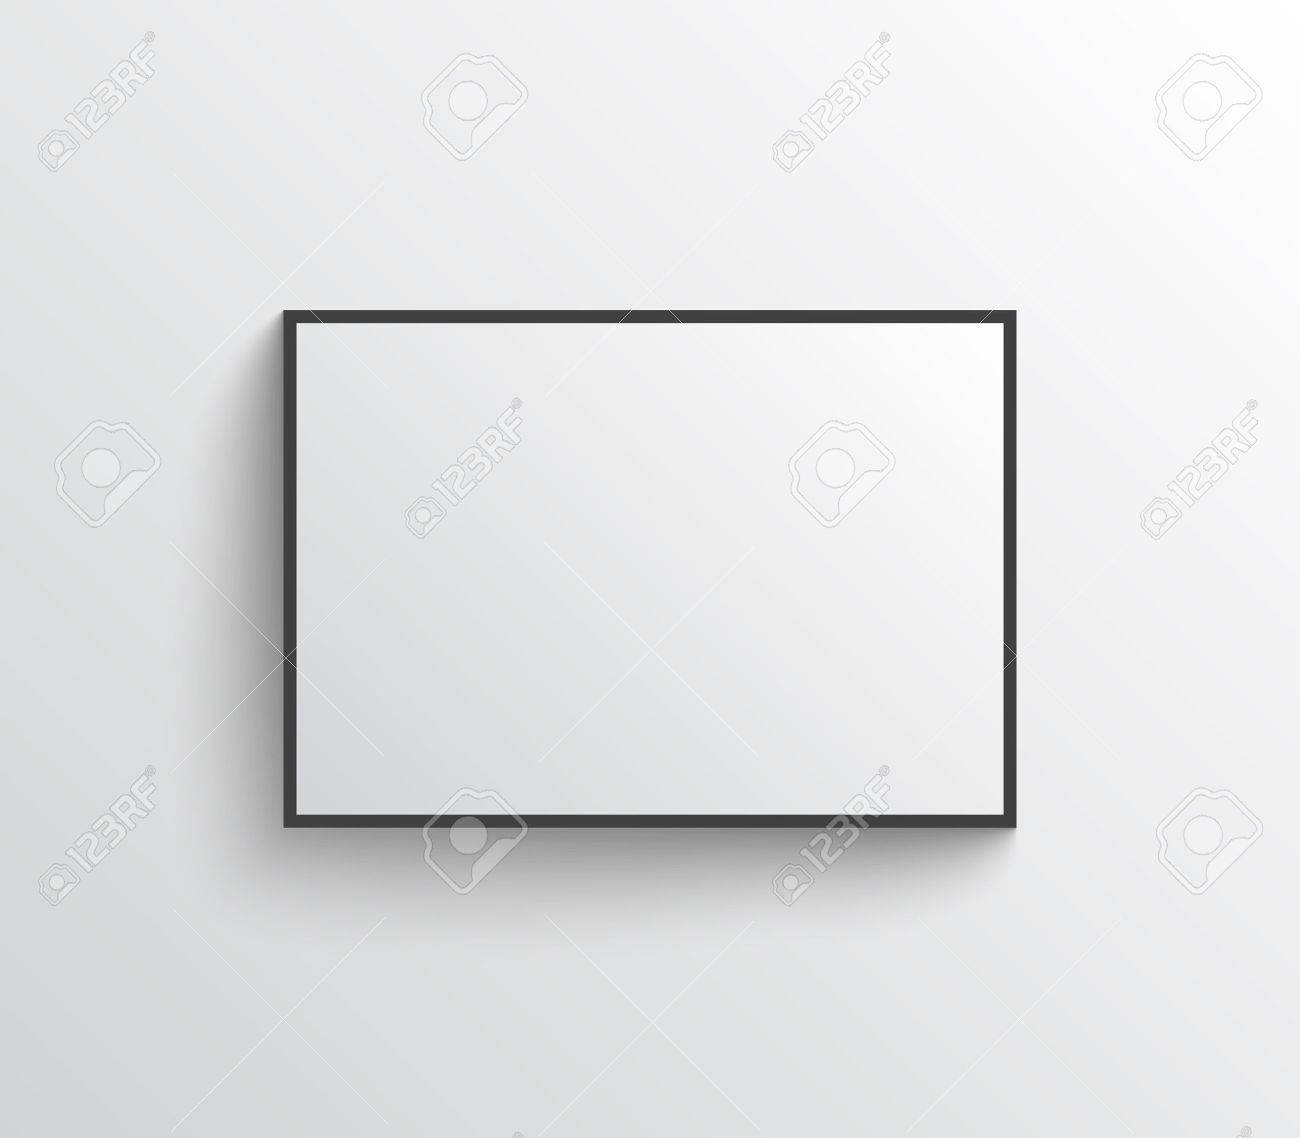 White Blank Poster With Black Frame On Grey Wall Shadows